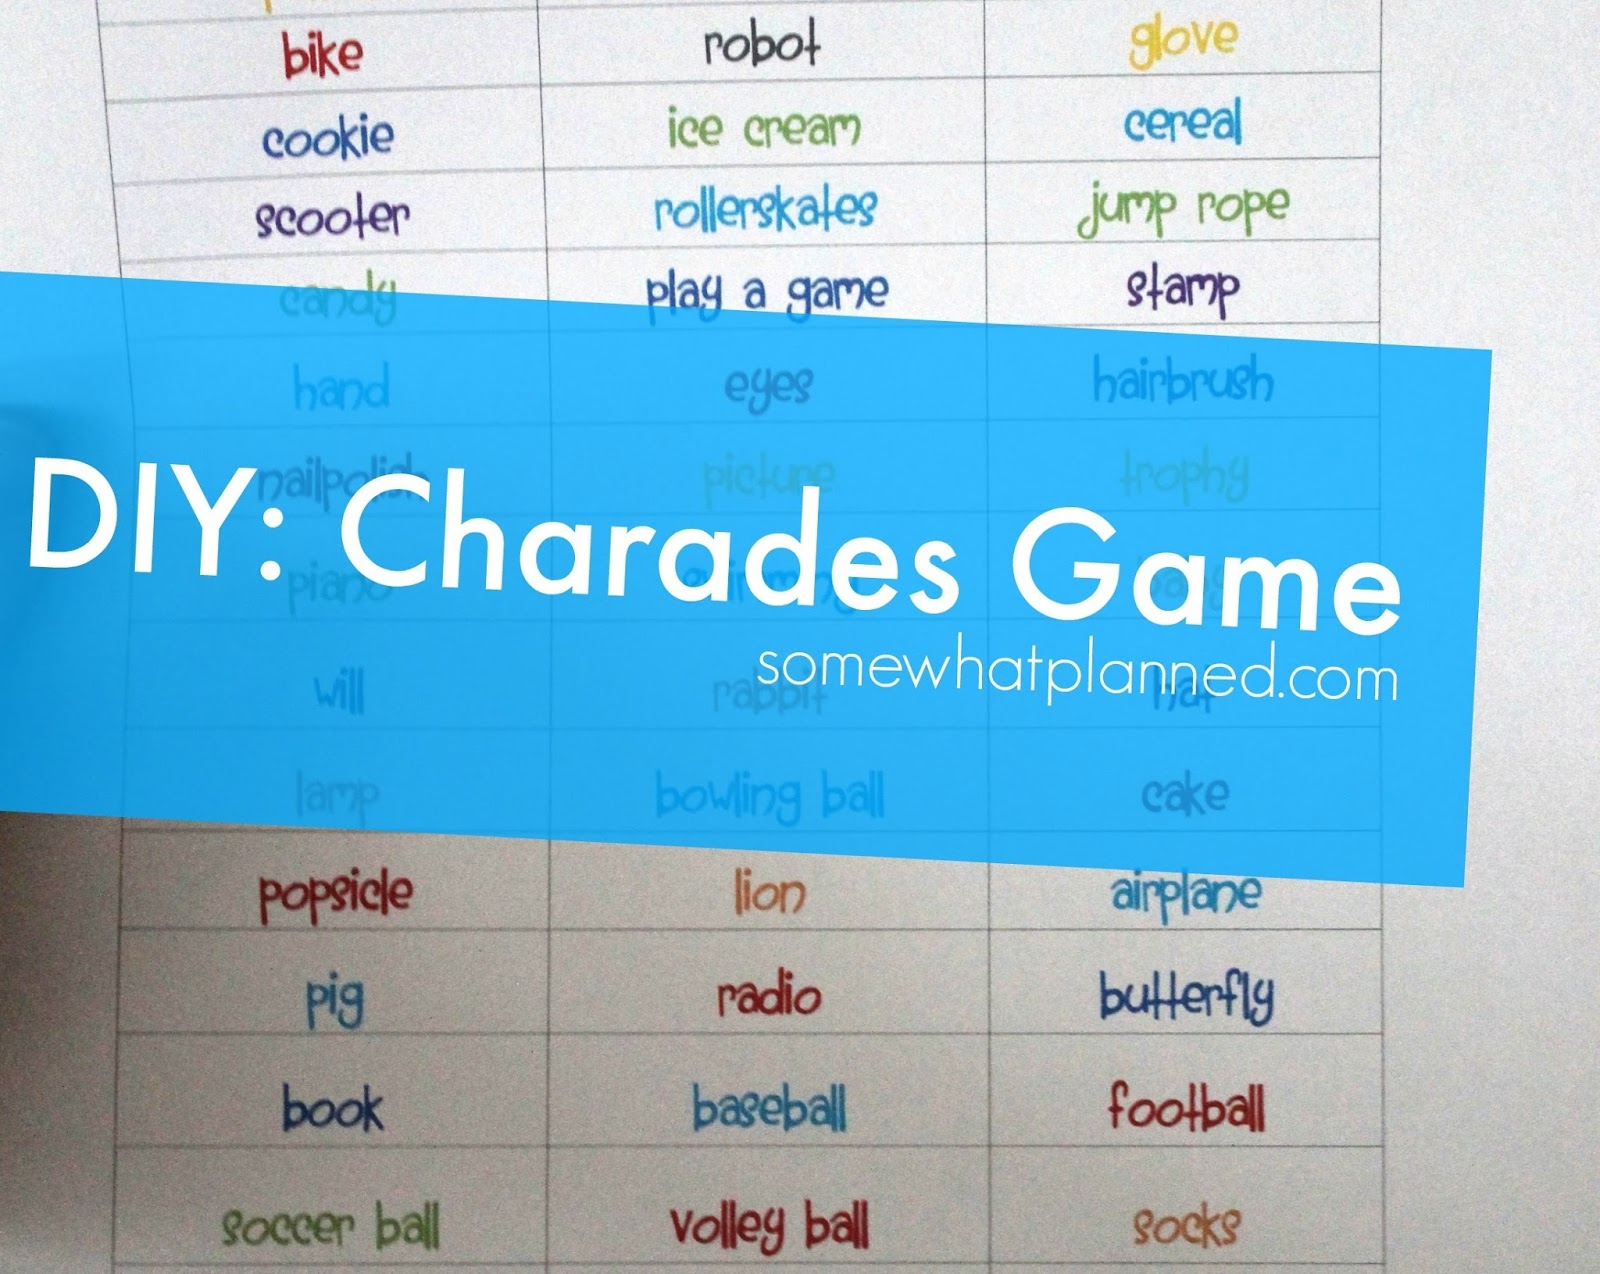 diy: charades game - somewhat planned